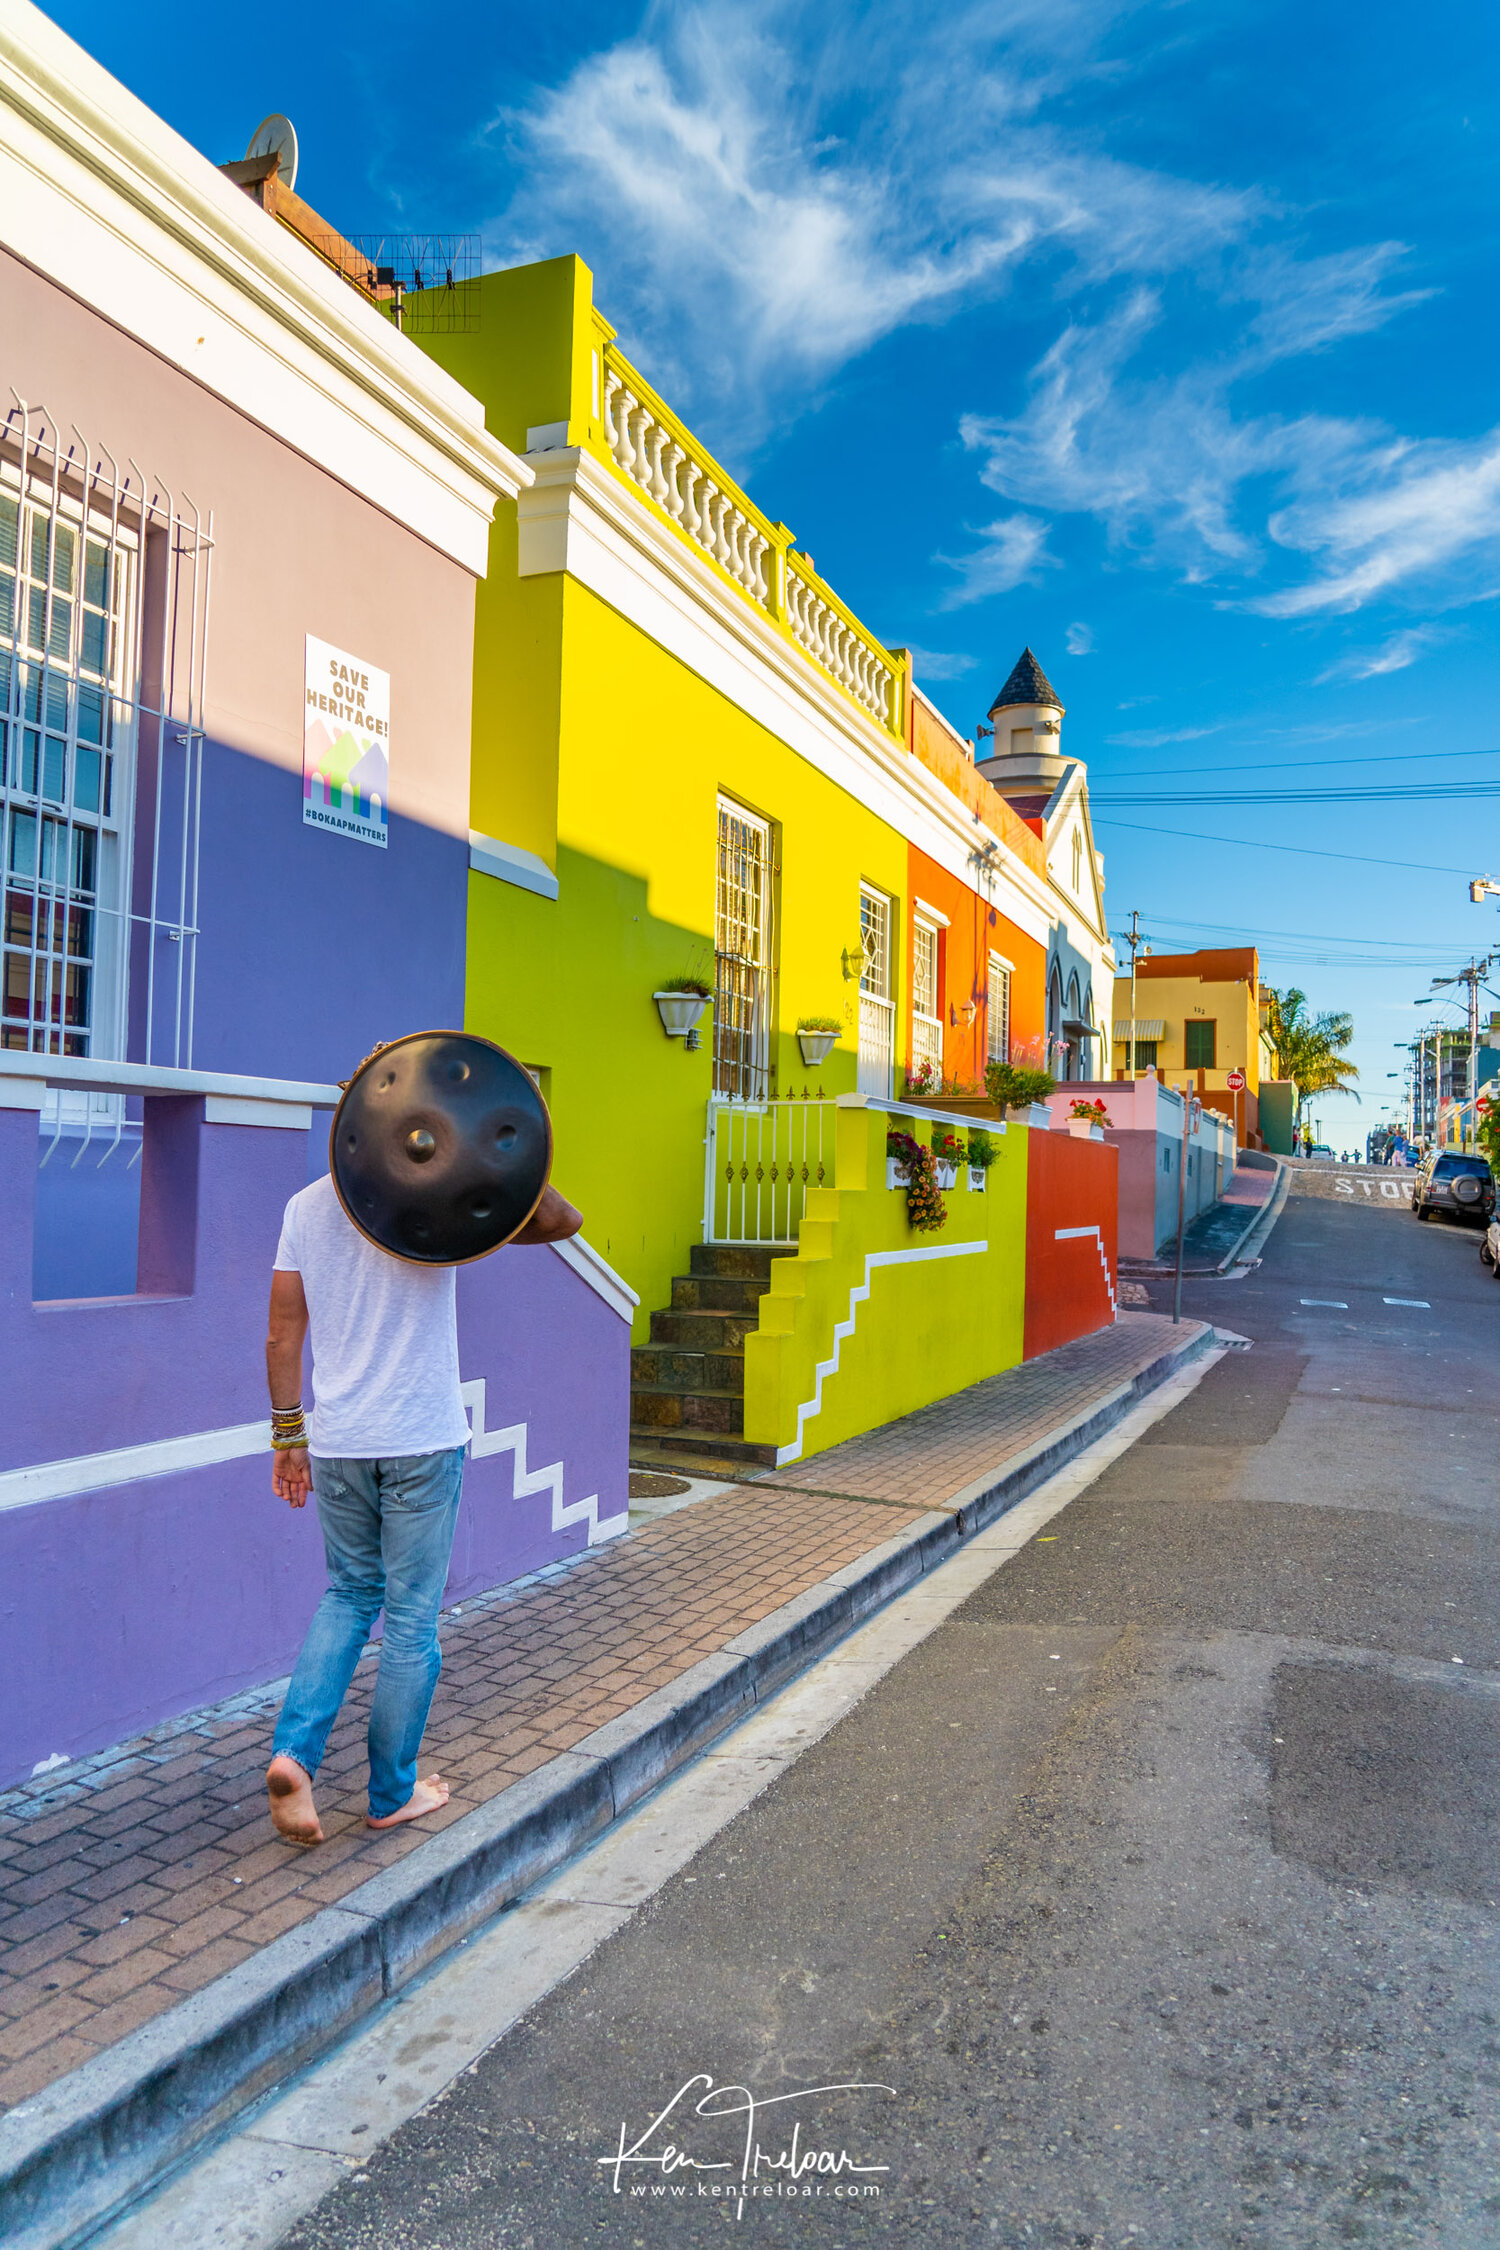 Marco Selvaggio Hang Musical Instrument - Bo-Kaap, Cape Town South Africa - Image by Ken Treloar Photography 2019-7.jpg